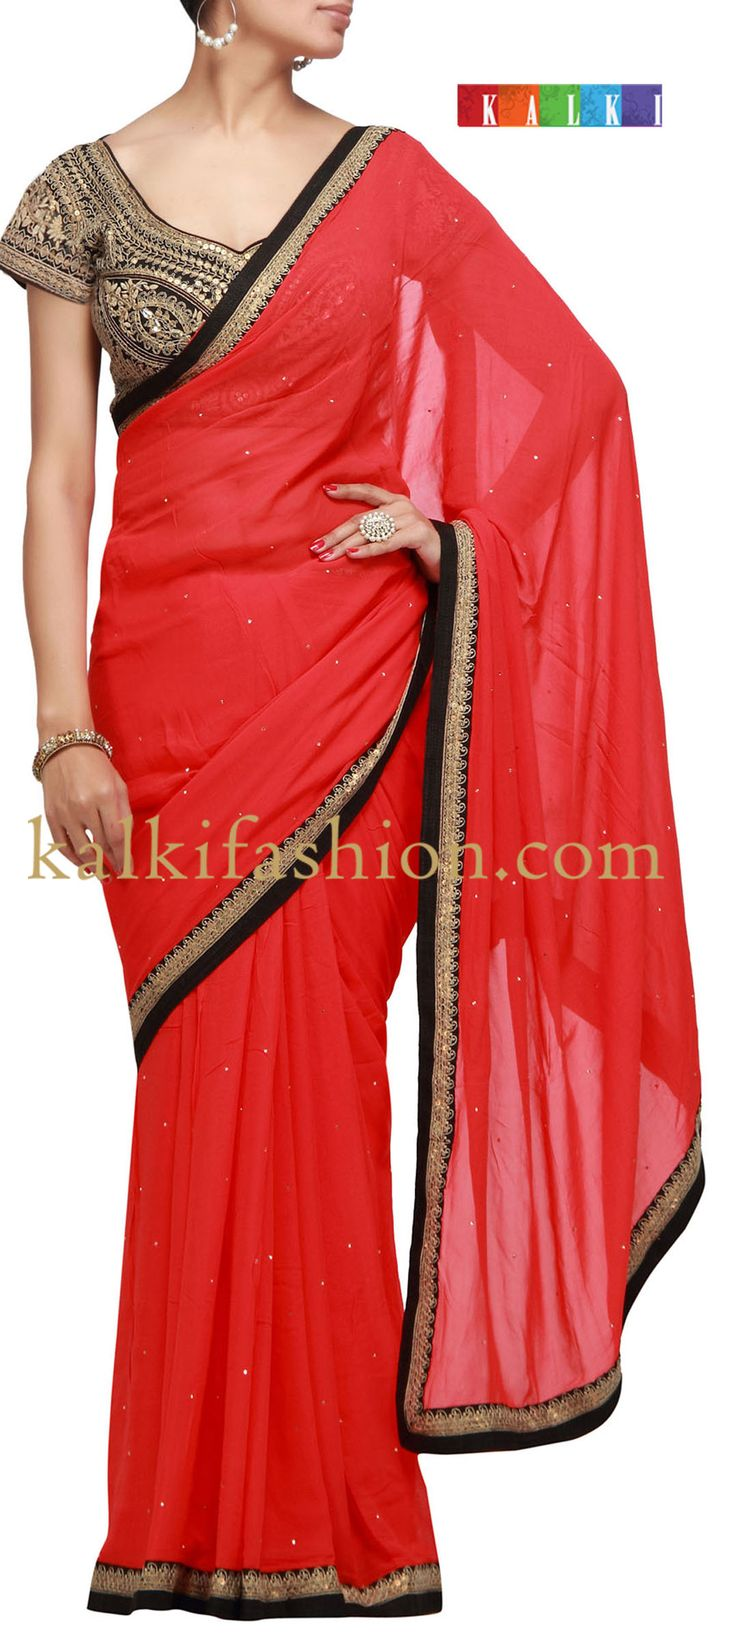 Buy it now  http://www.kalkifashion.com/red-chiffon-saree-with-badla-work.html  Red chiffon saree with badla work